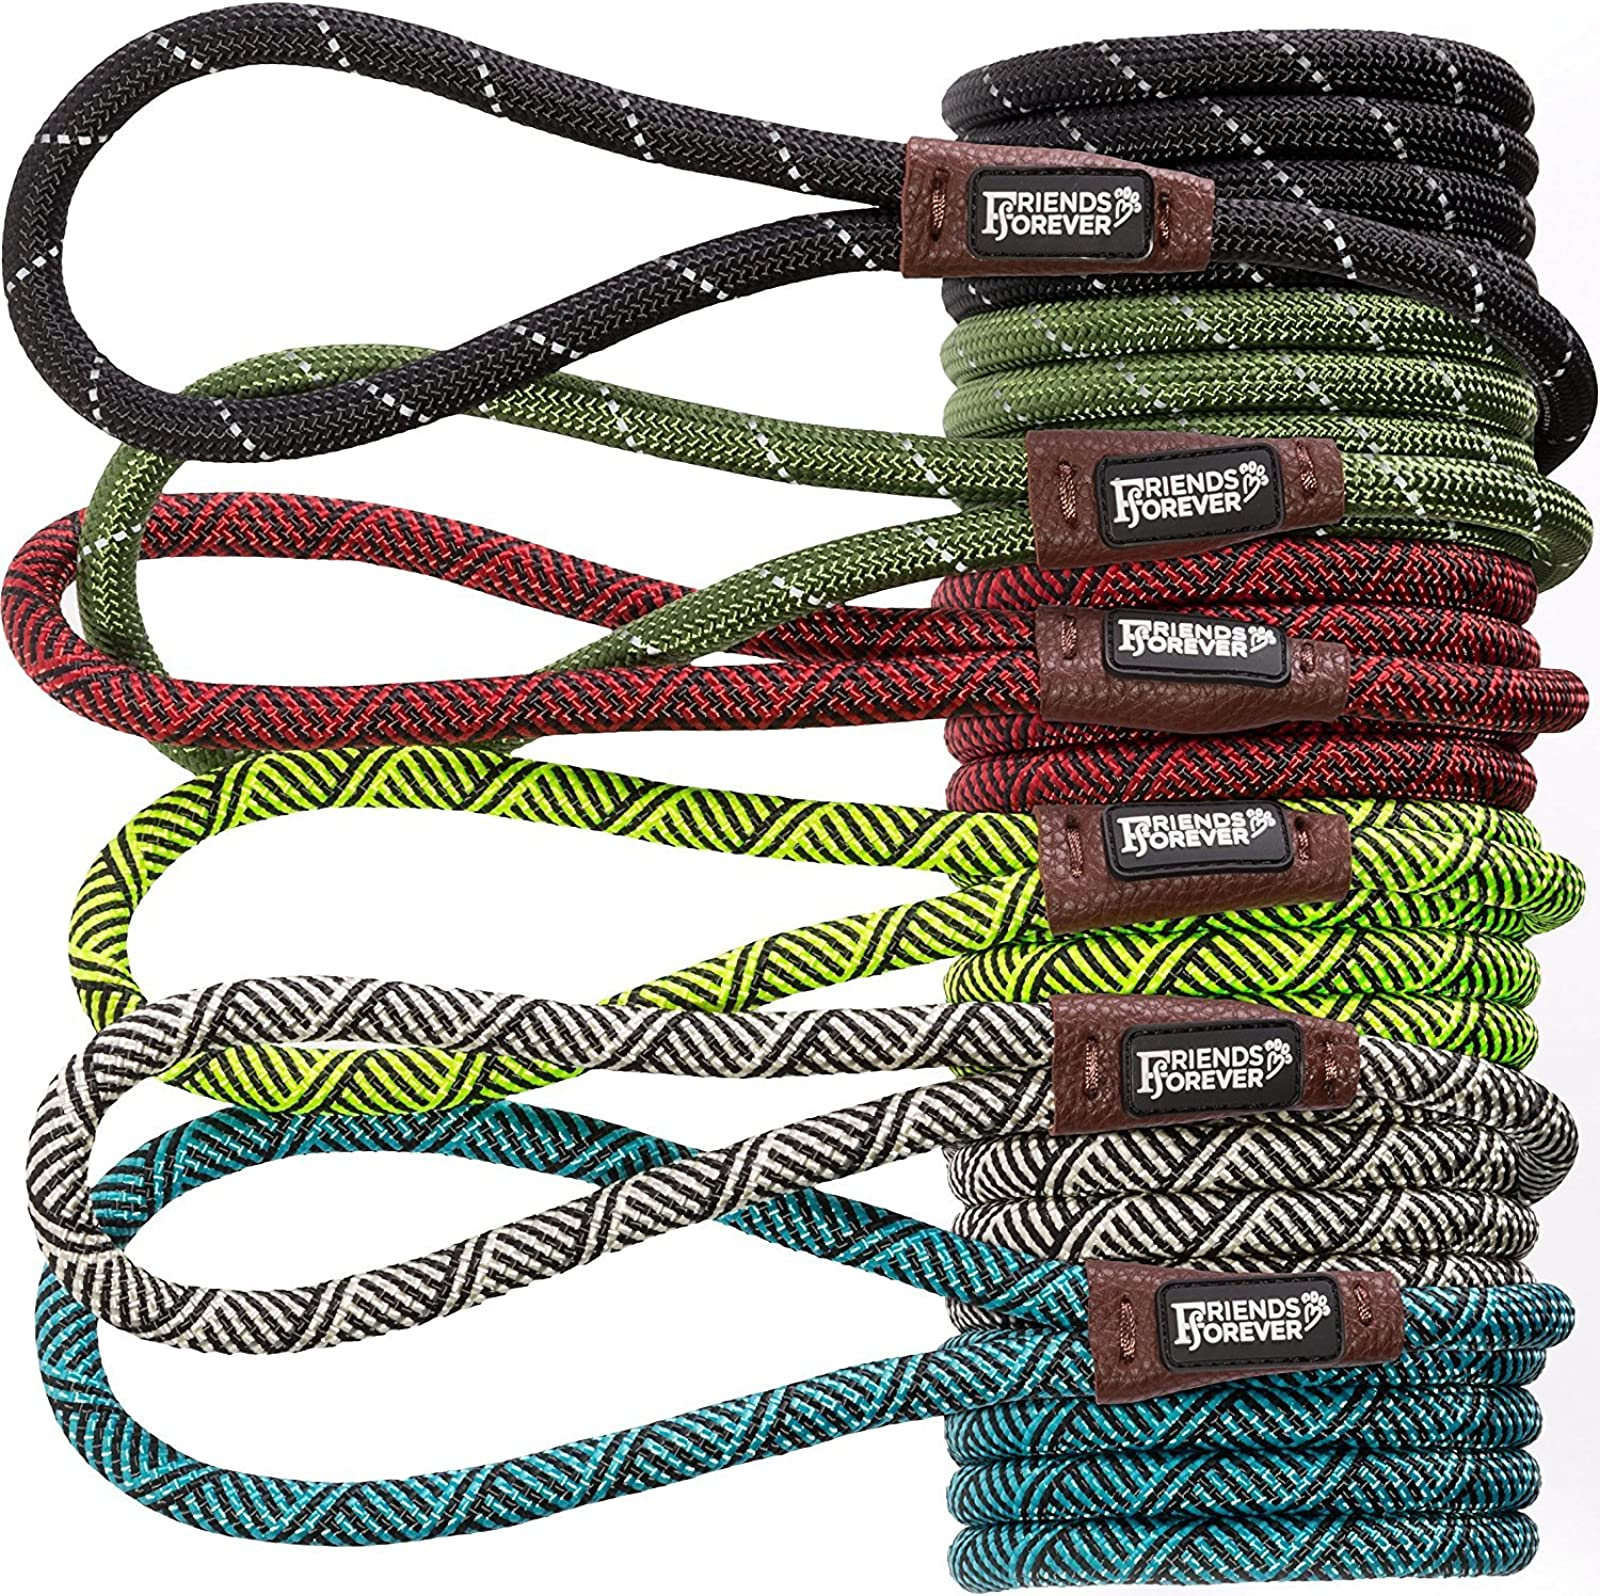 Friends Forever Extremely Durable Dog Rope Leash - 8